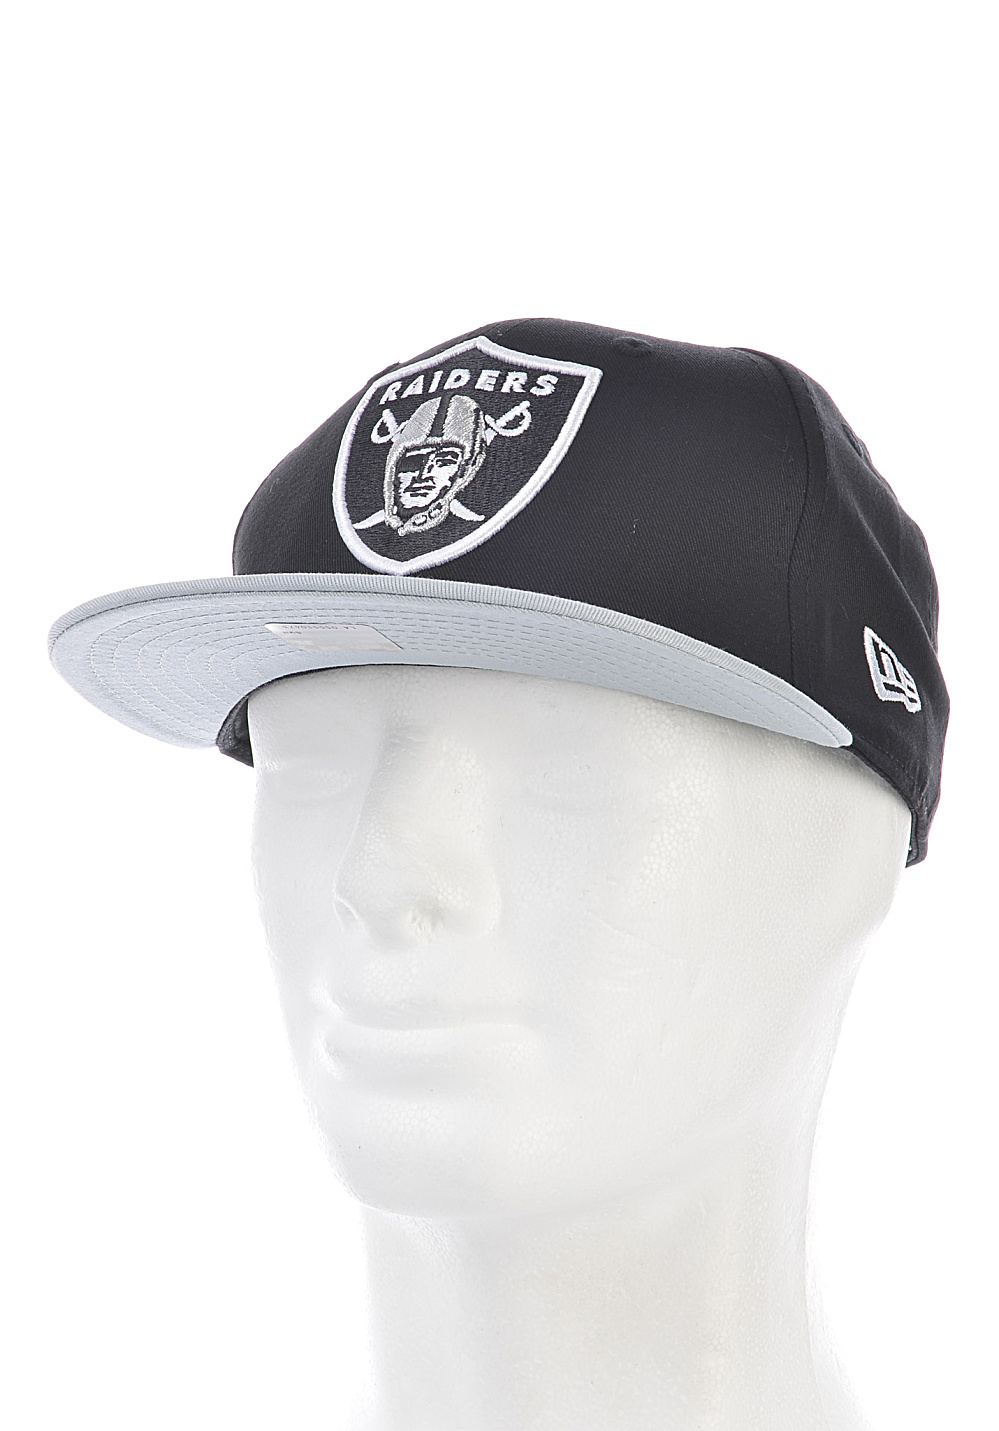 1beecd3737e ... NEW Era 9Fifty Oakland Raiders - Snapback Cap - Grey. Back to Overview.  1  2. Previous